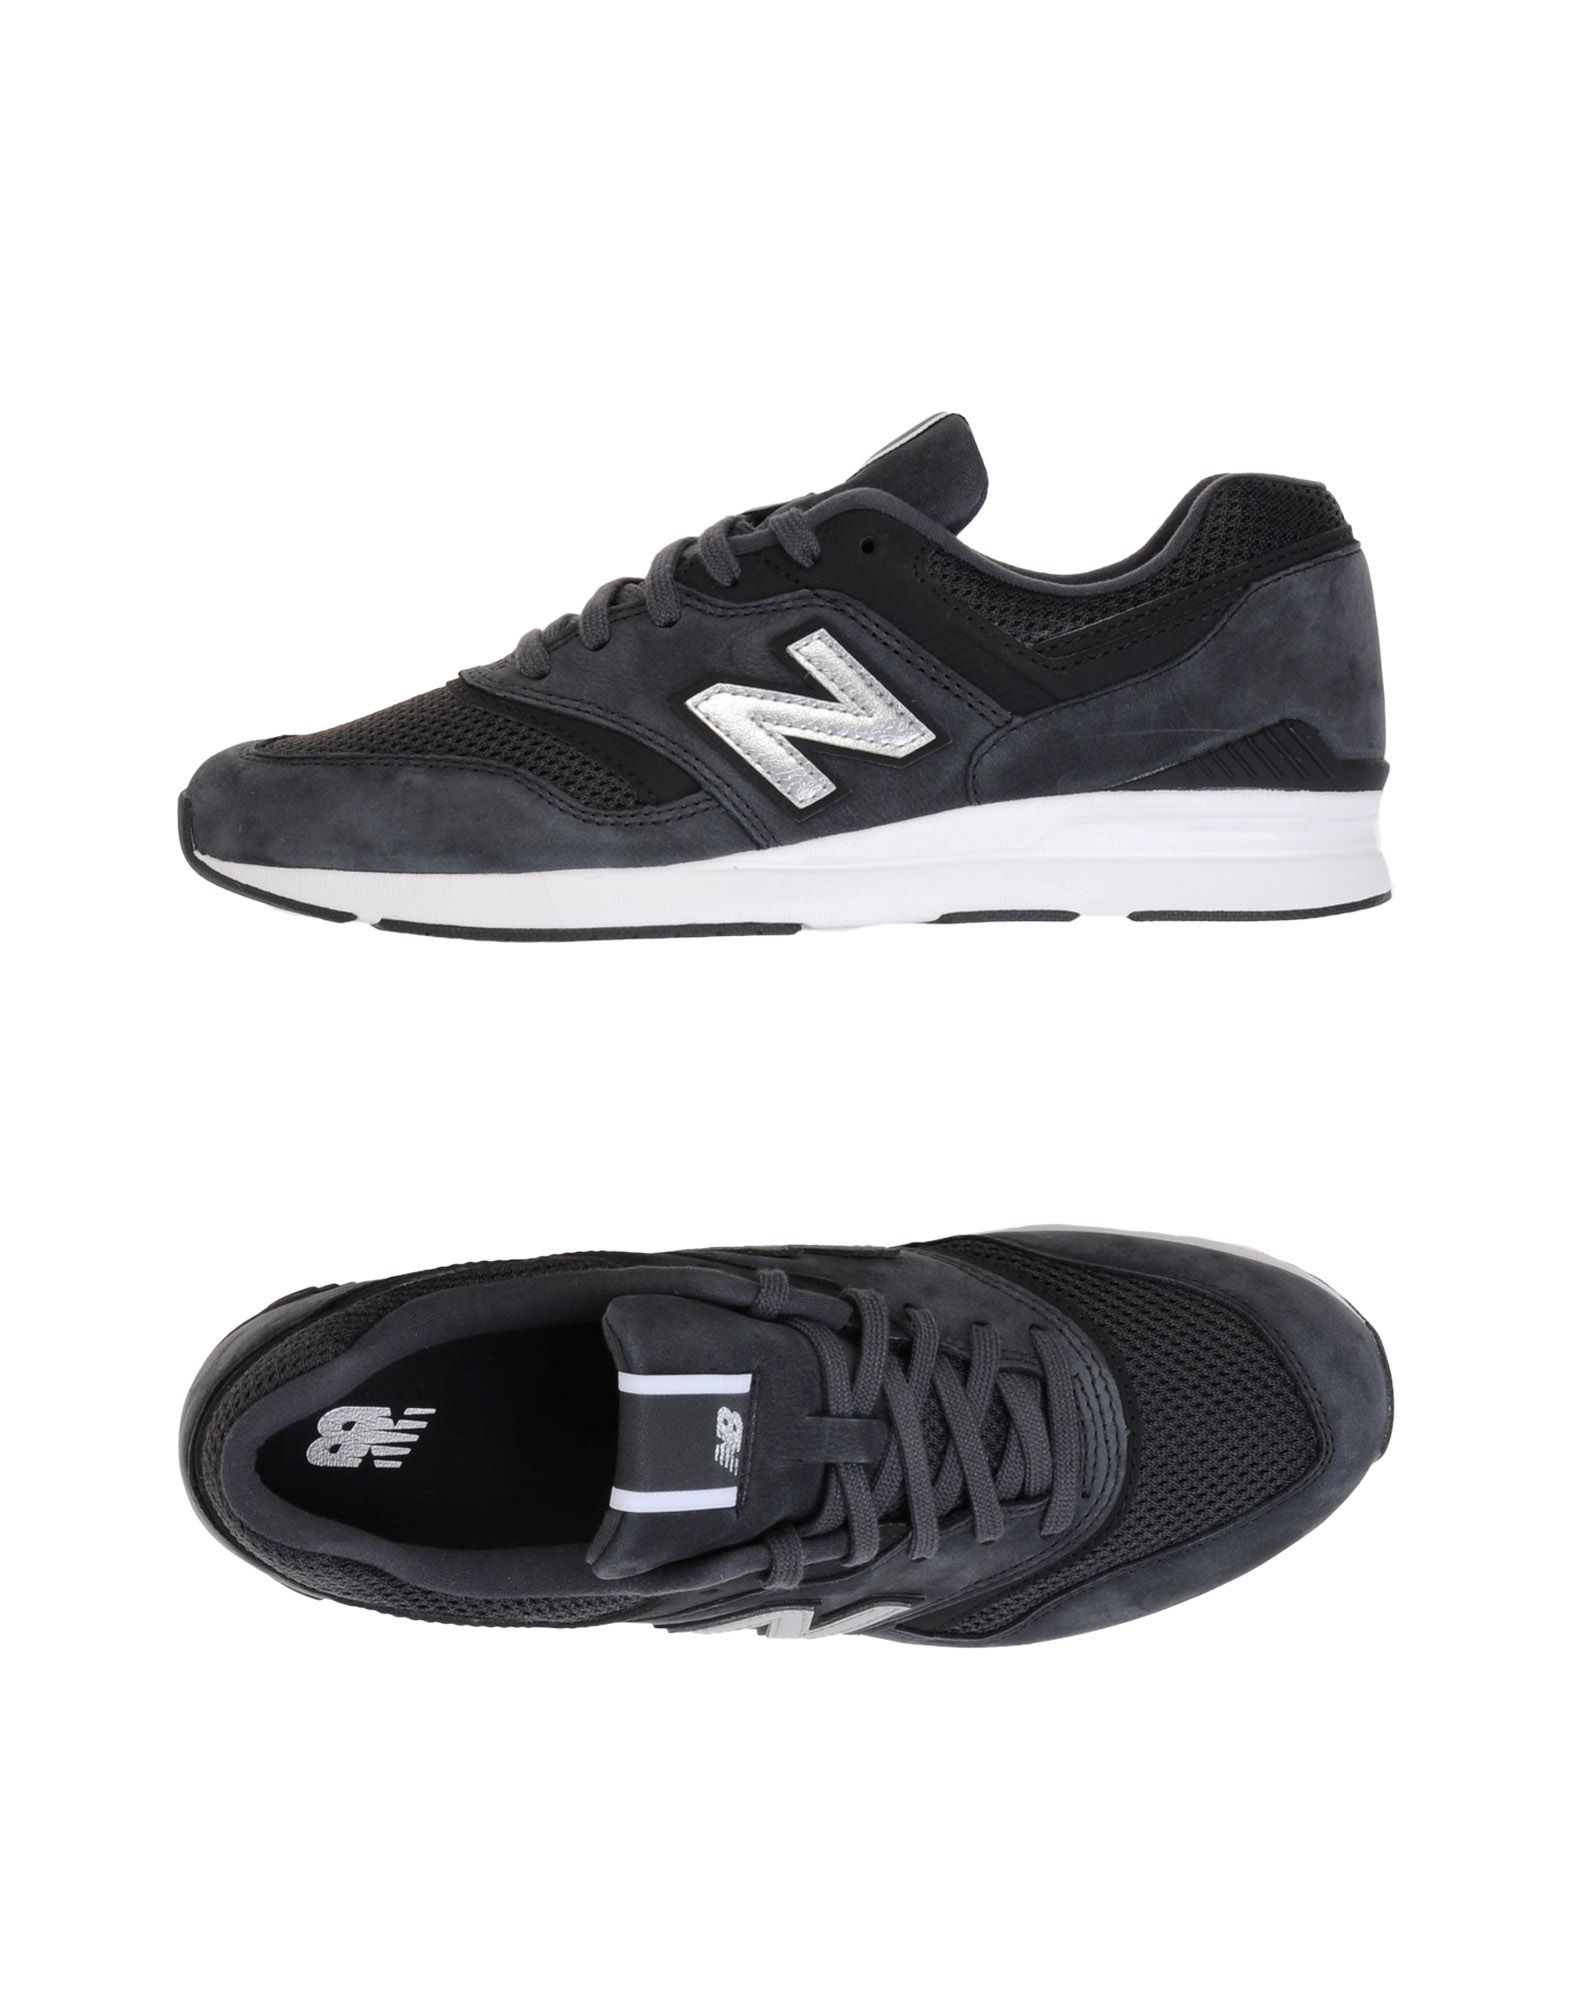 Sneakers New Balance 697 Tier 2 - Donna - 11466865GG